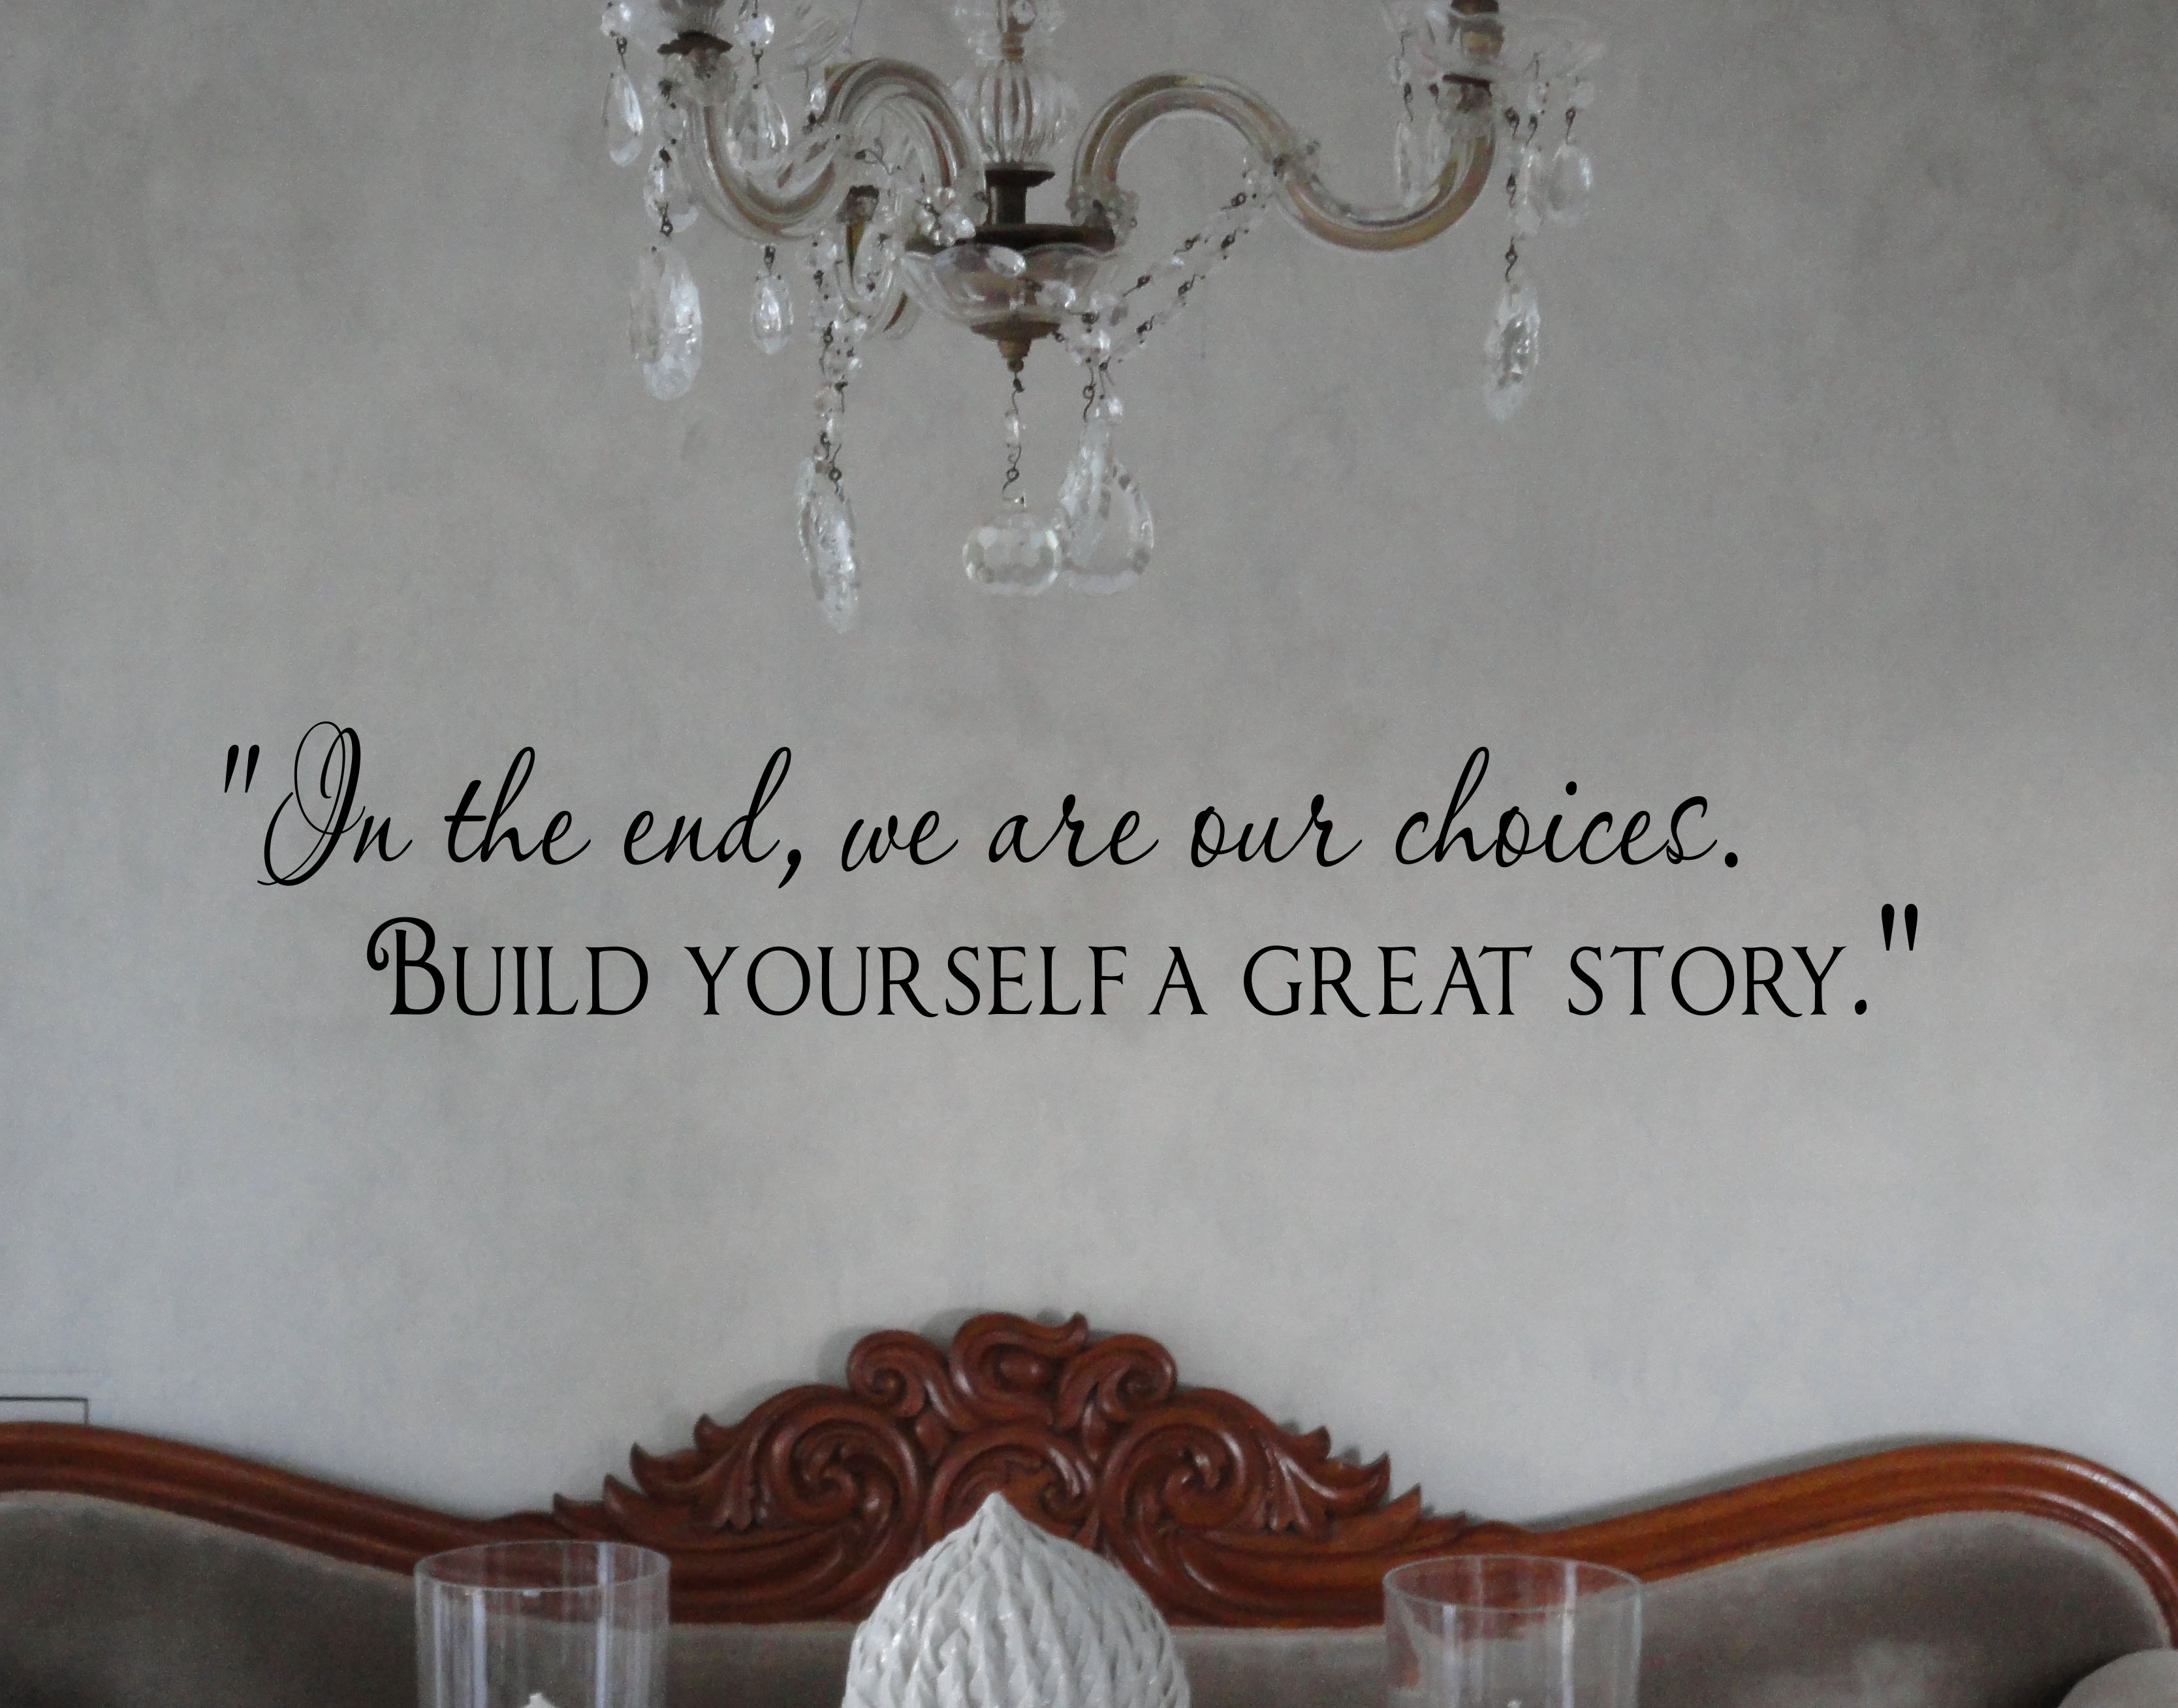 We Are Our Choices Wall Decal